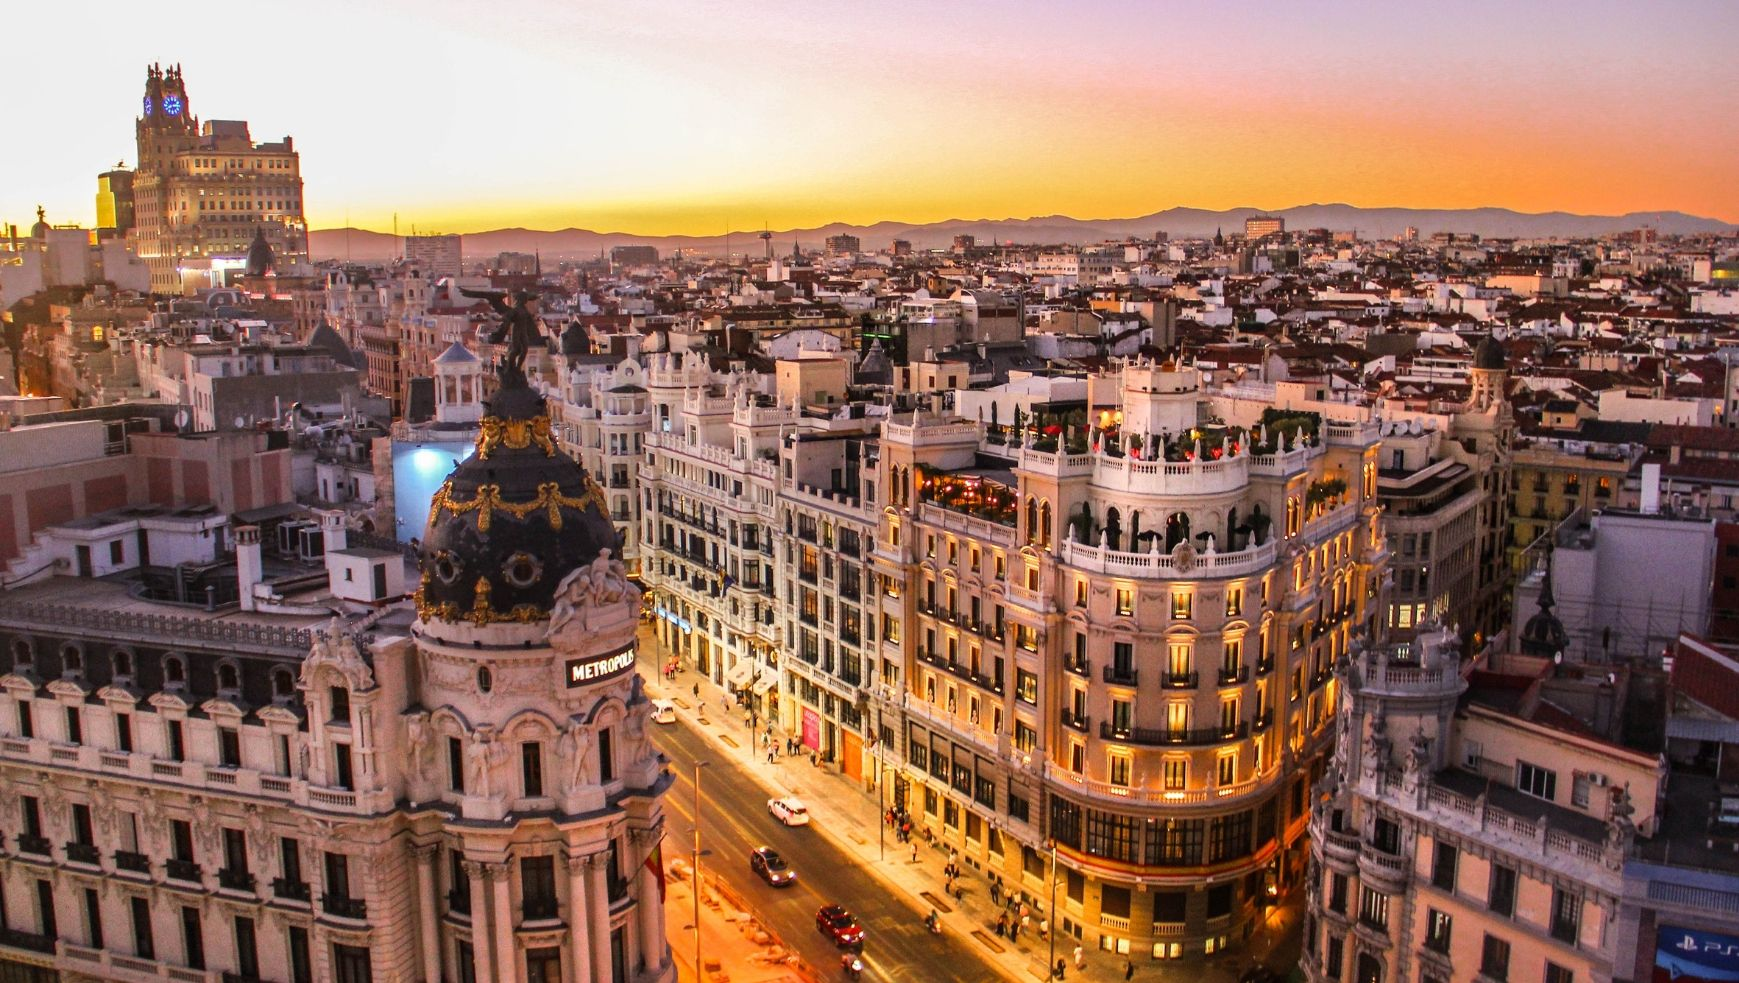 Bettersafe Best places to visit in Europe 2019 - Madrid, Spain